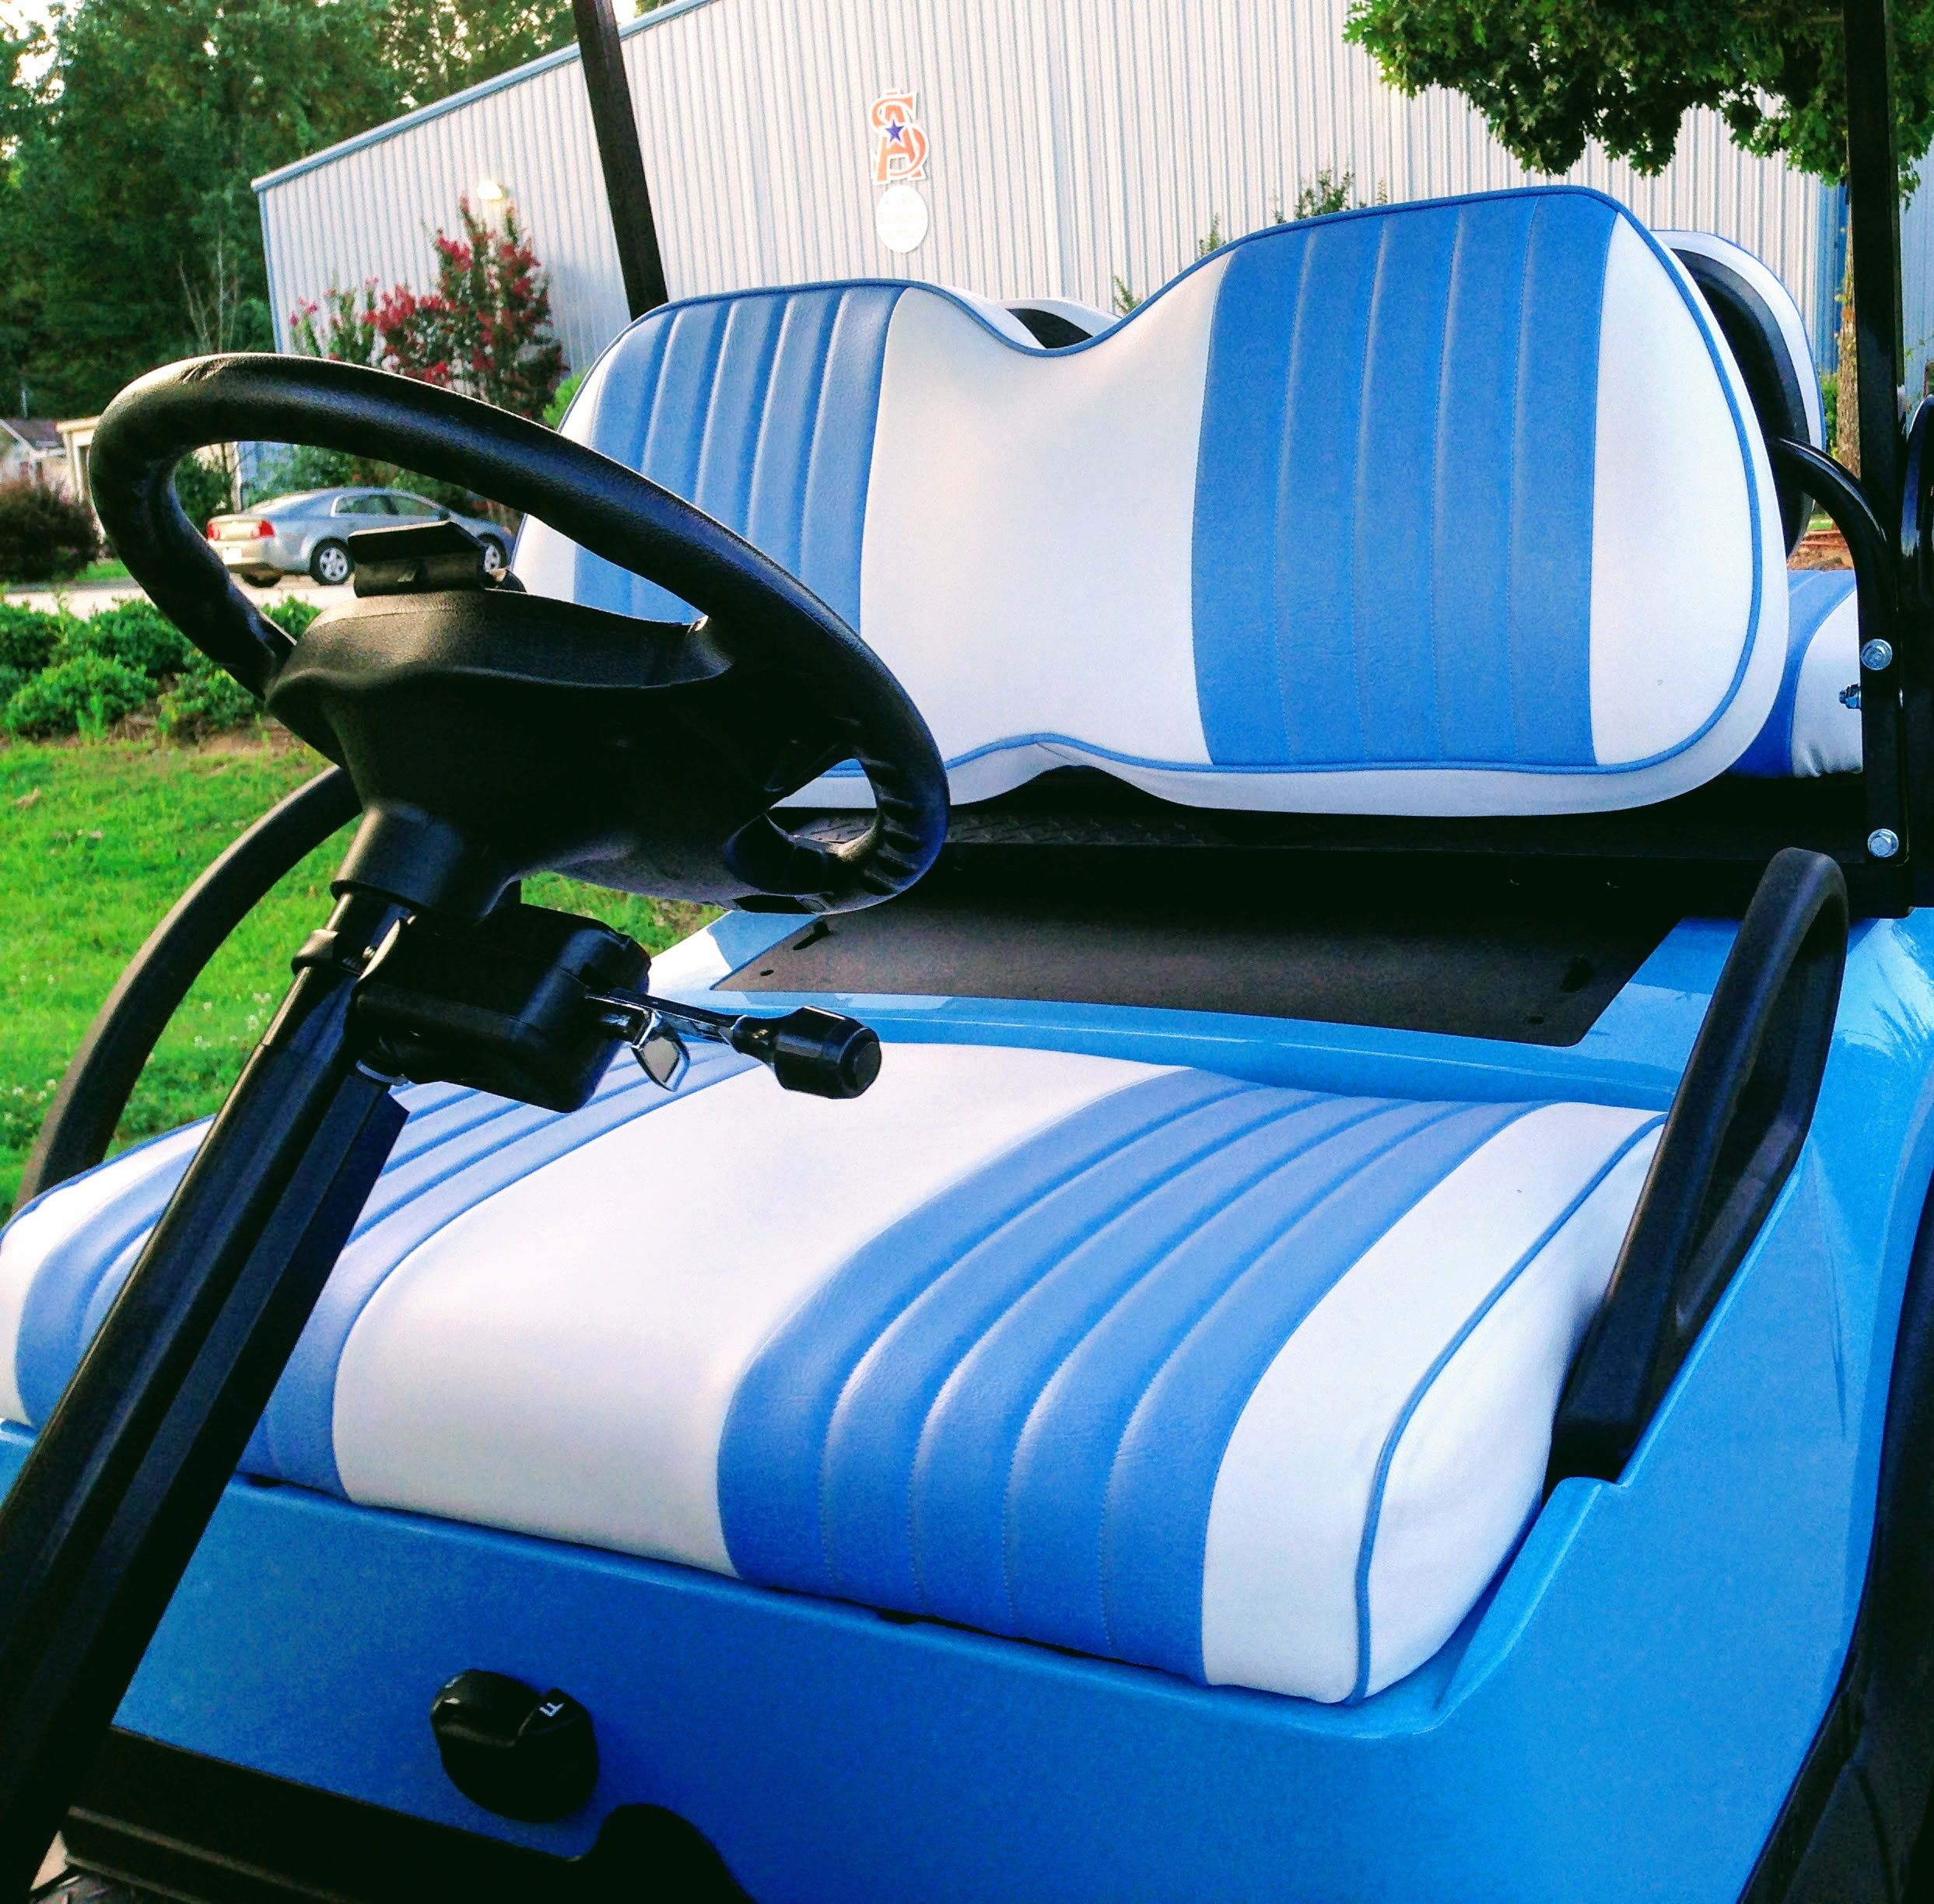 Customize Your Club Car With Two Toned Golf Cart Seat Covers Clubcargolfcart